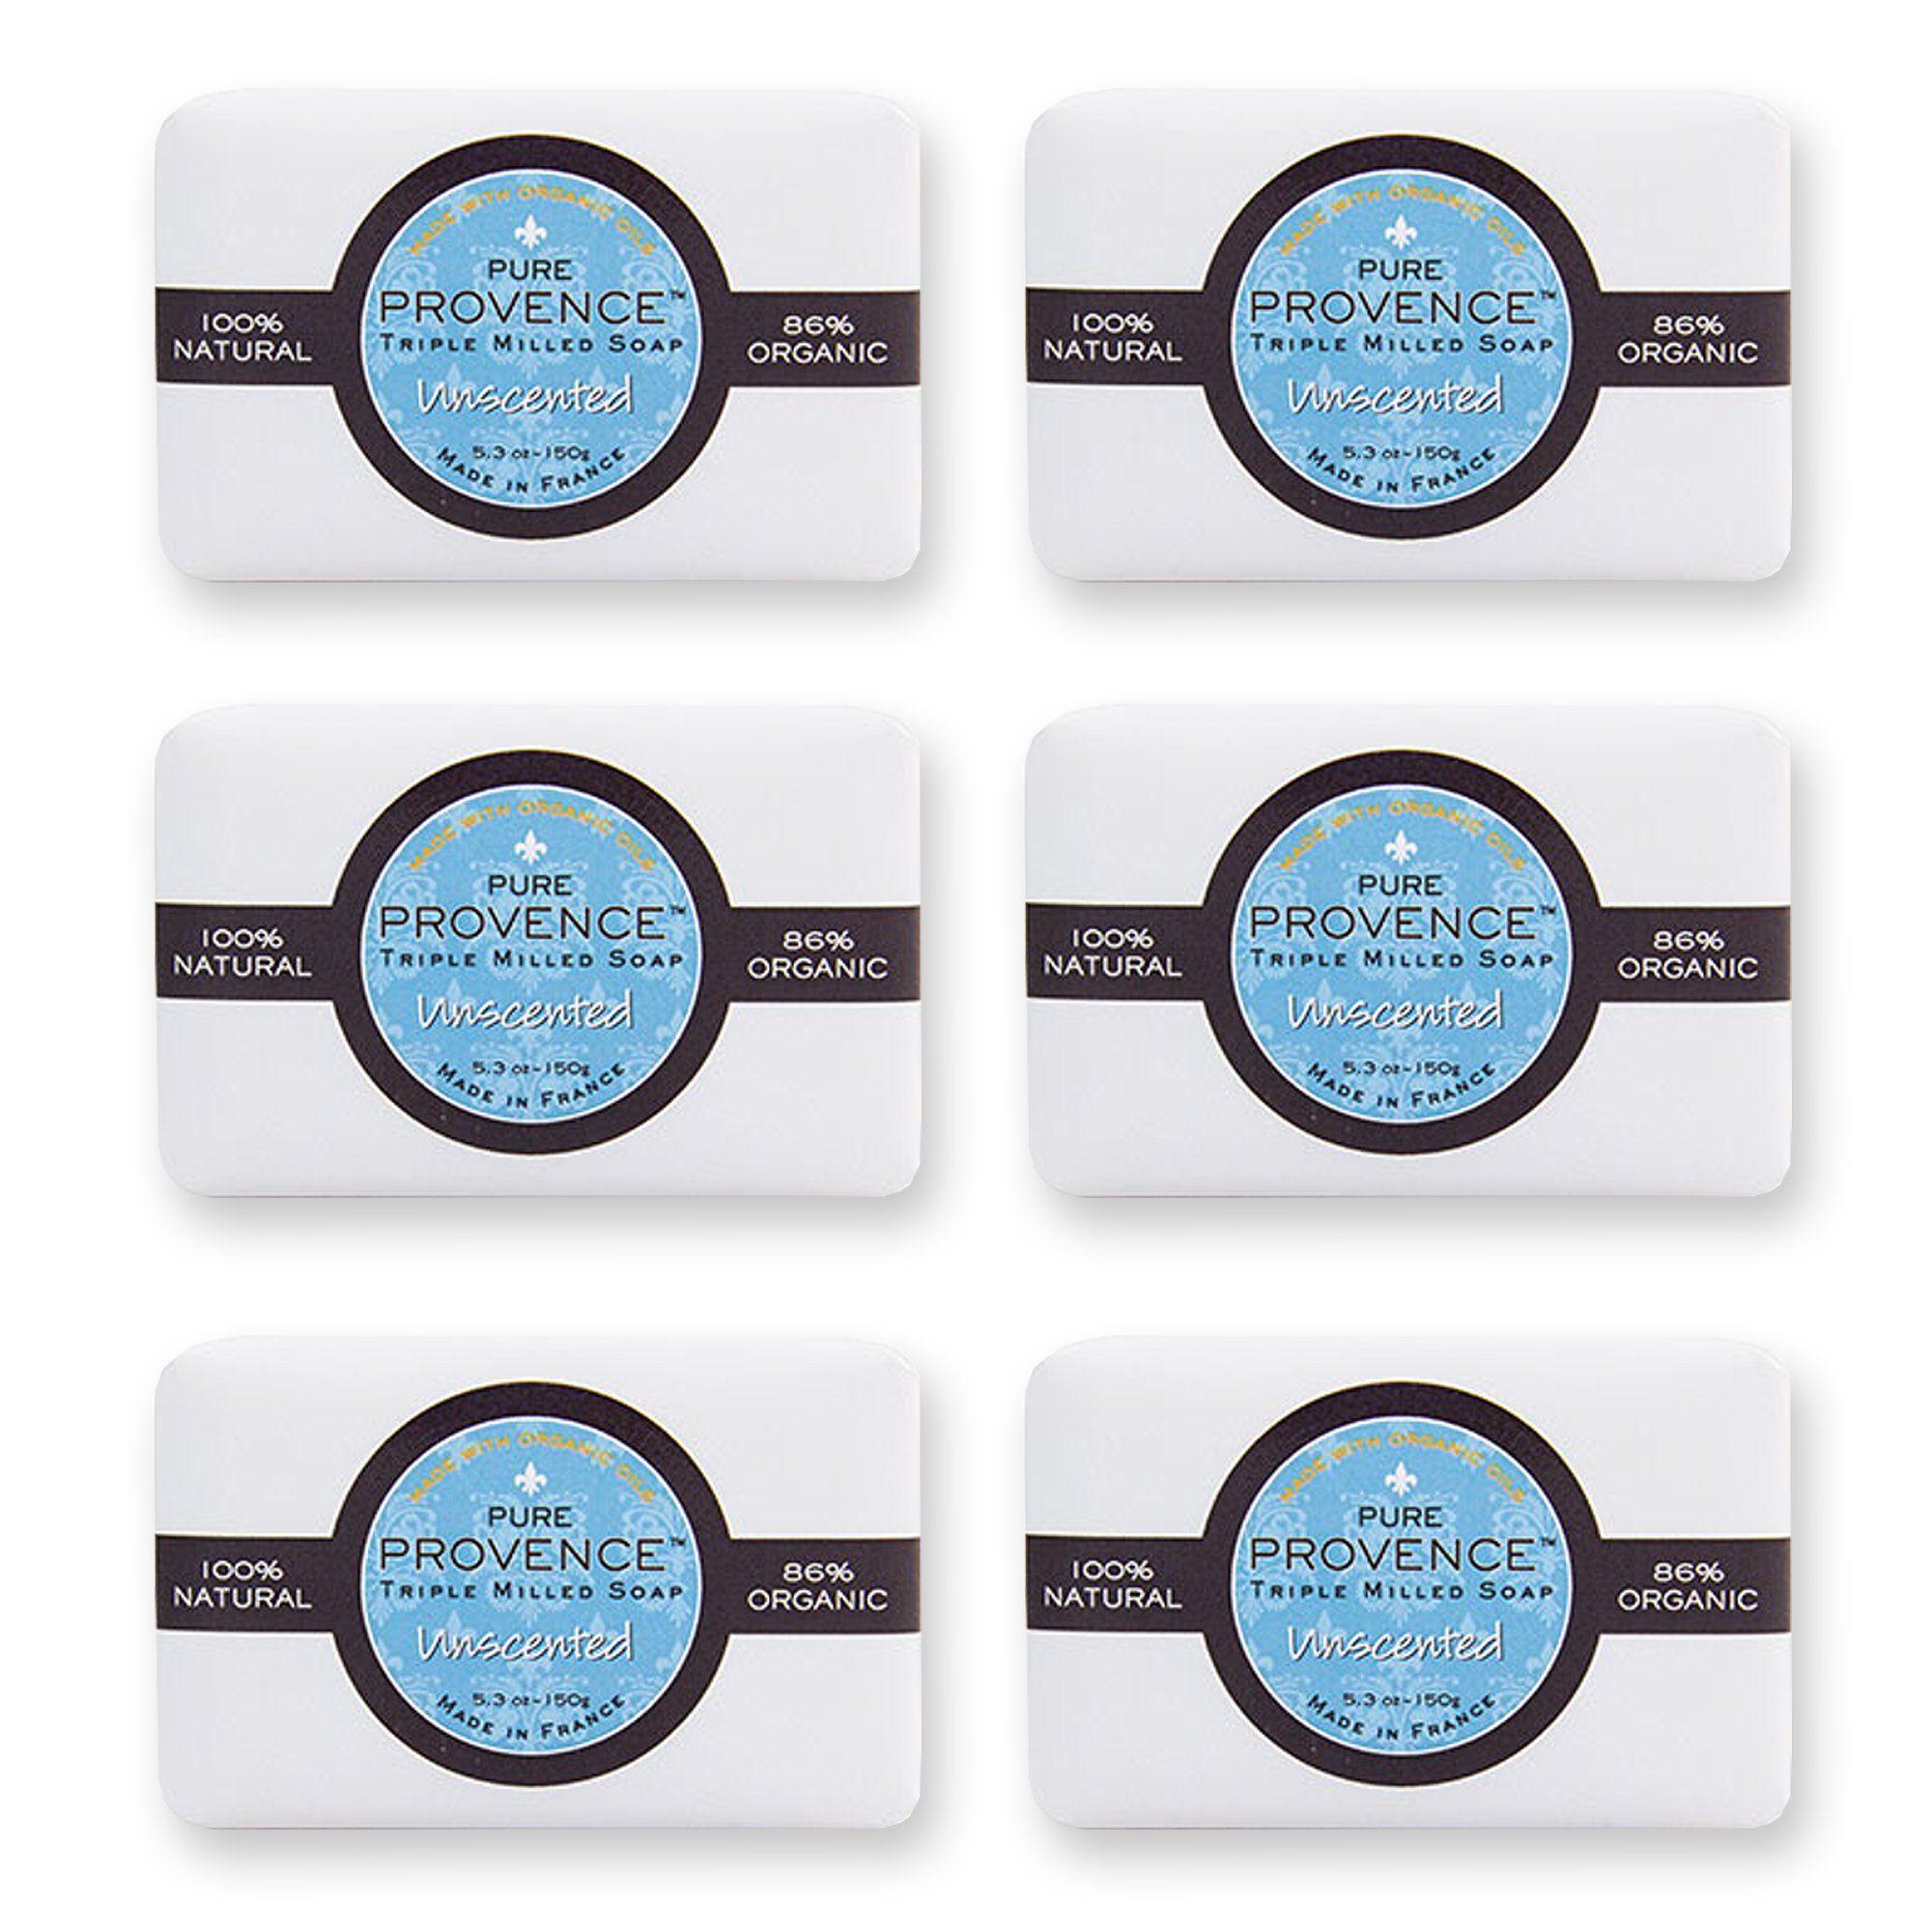 Pure provence certified organic triple milled soap shea butter pure provence certified organic triple milled soap shea butter fragrance free soaps sensitive 1betcityfo Choice Image